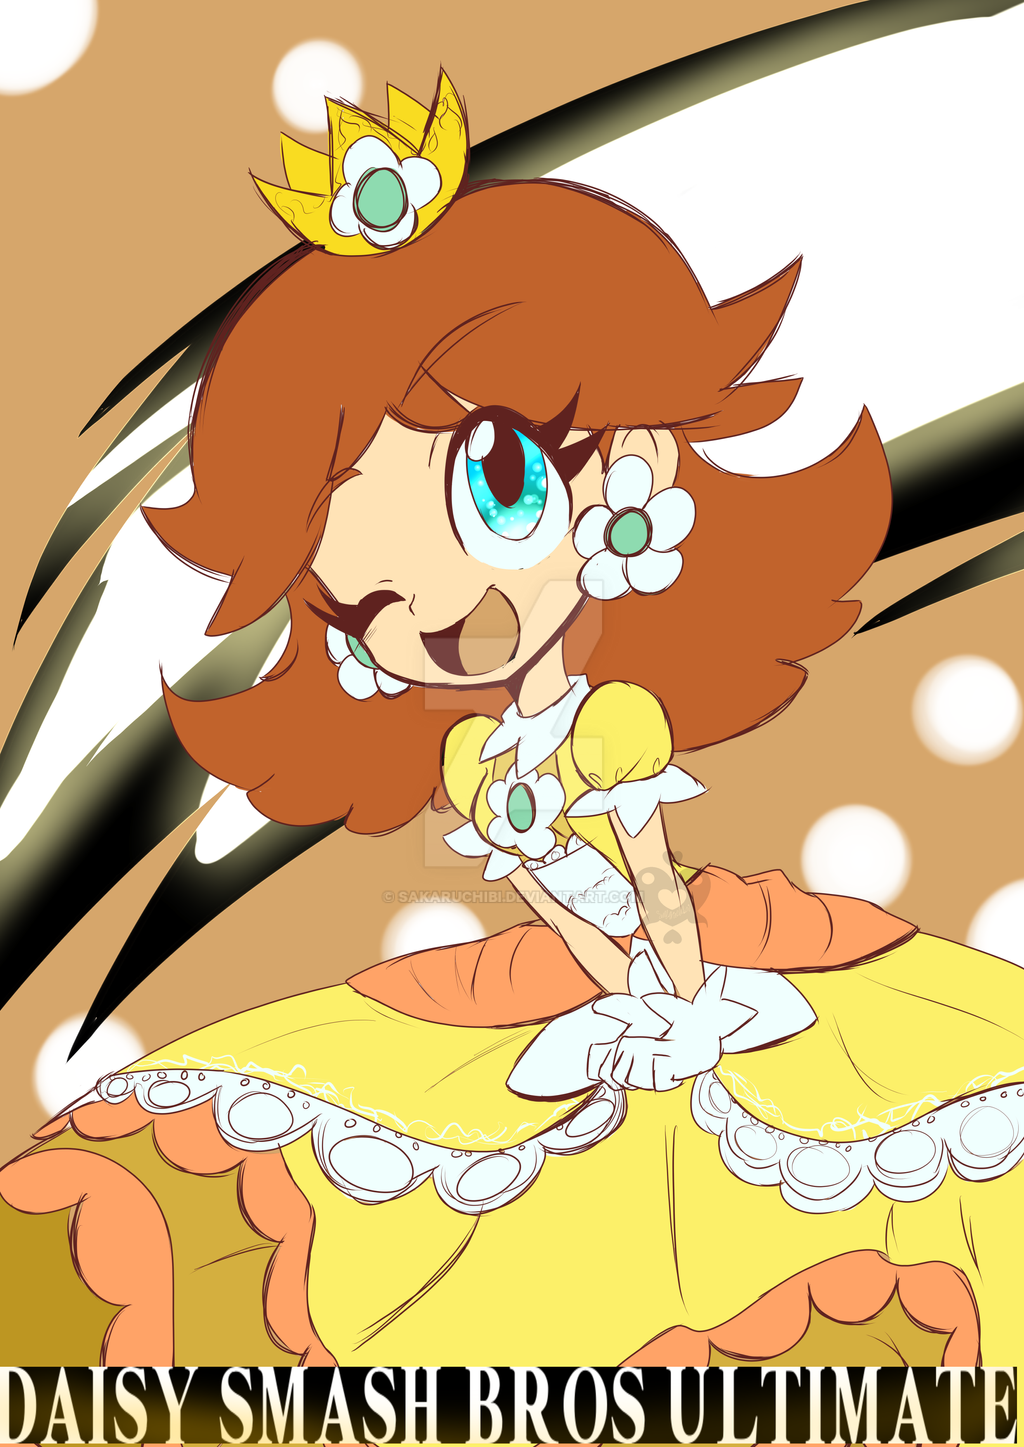 Daisy Smash Bros Ultimate by sakaruchibi